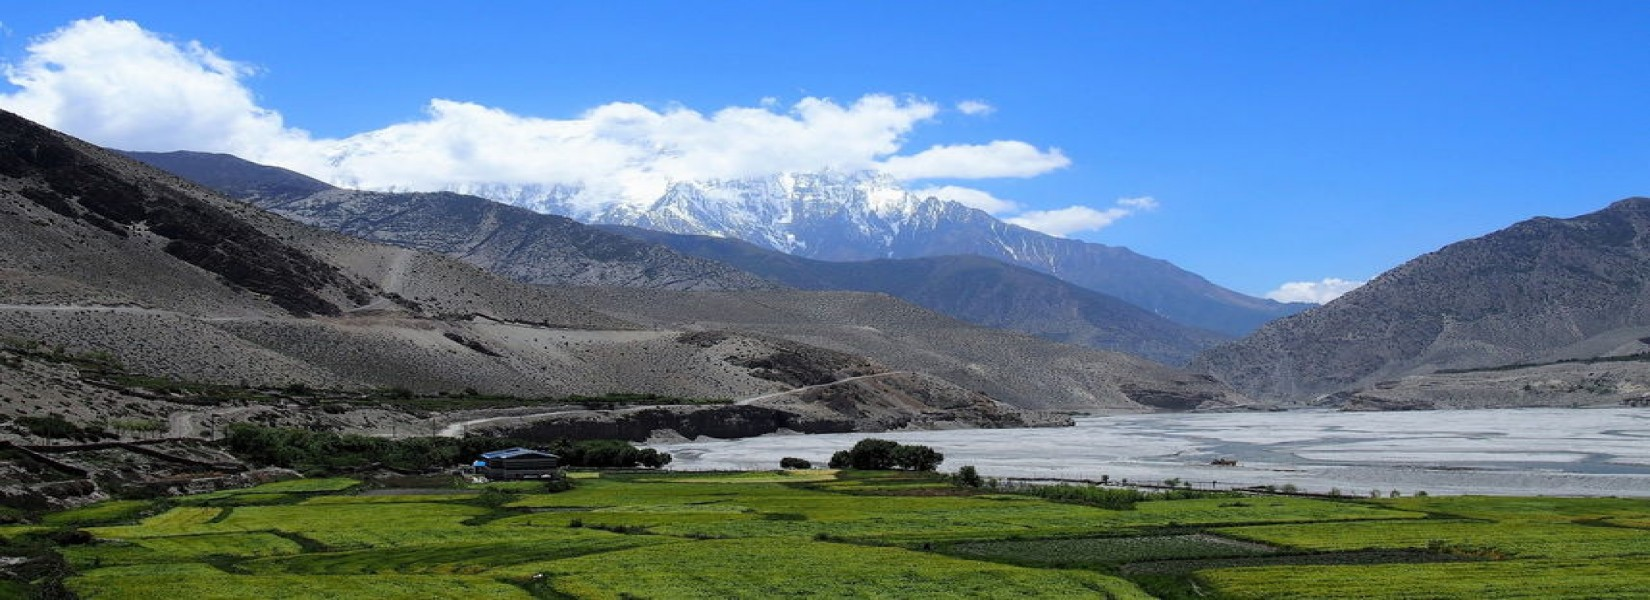 Best Trekking Destinations in Nepal in February